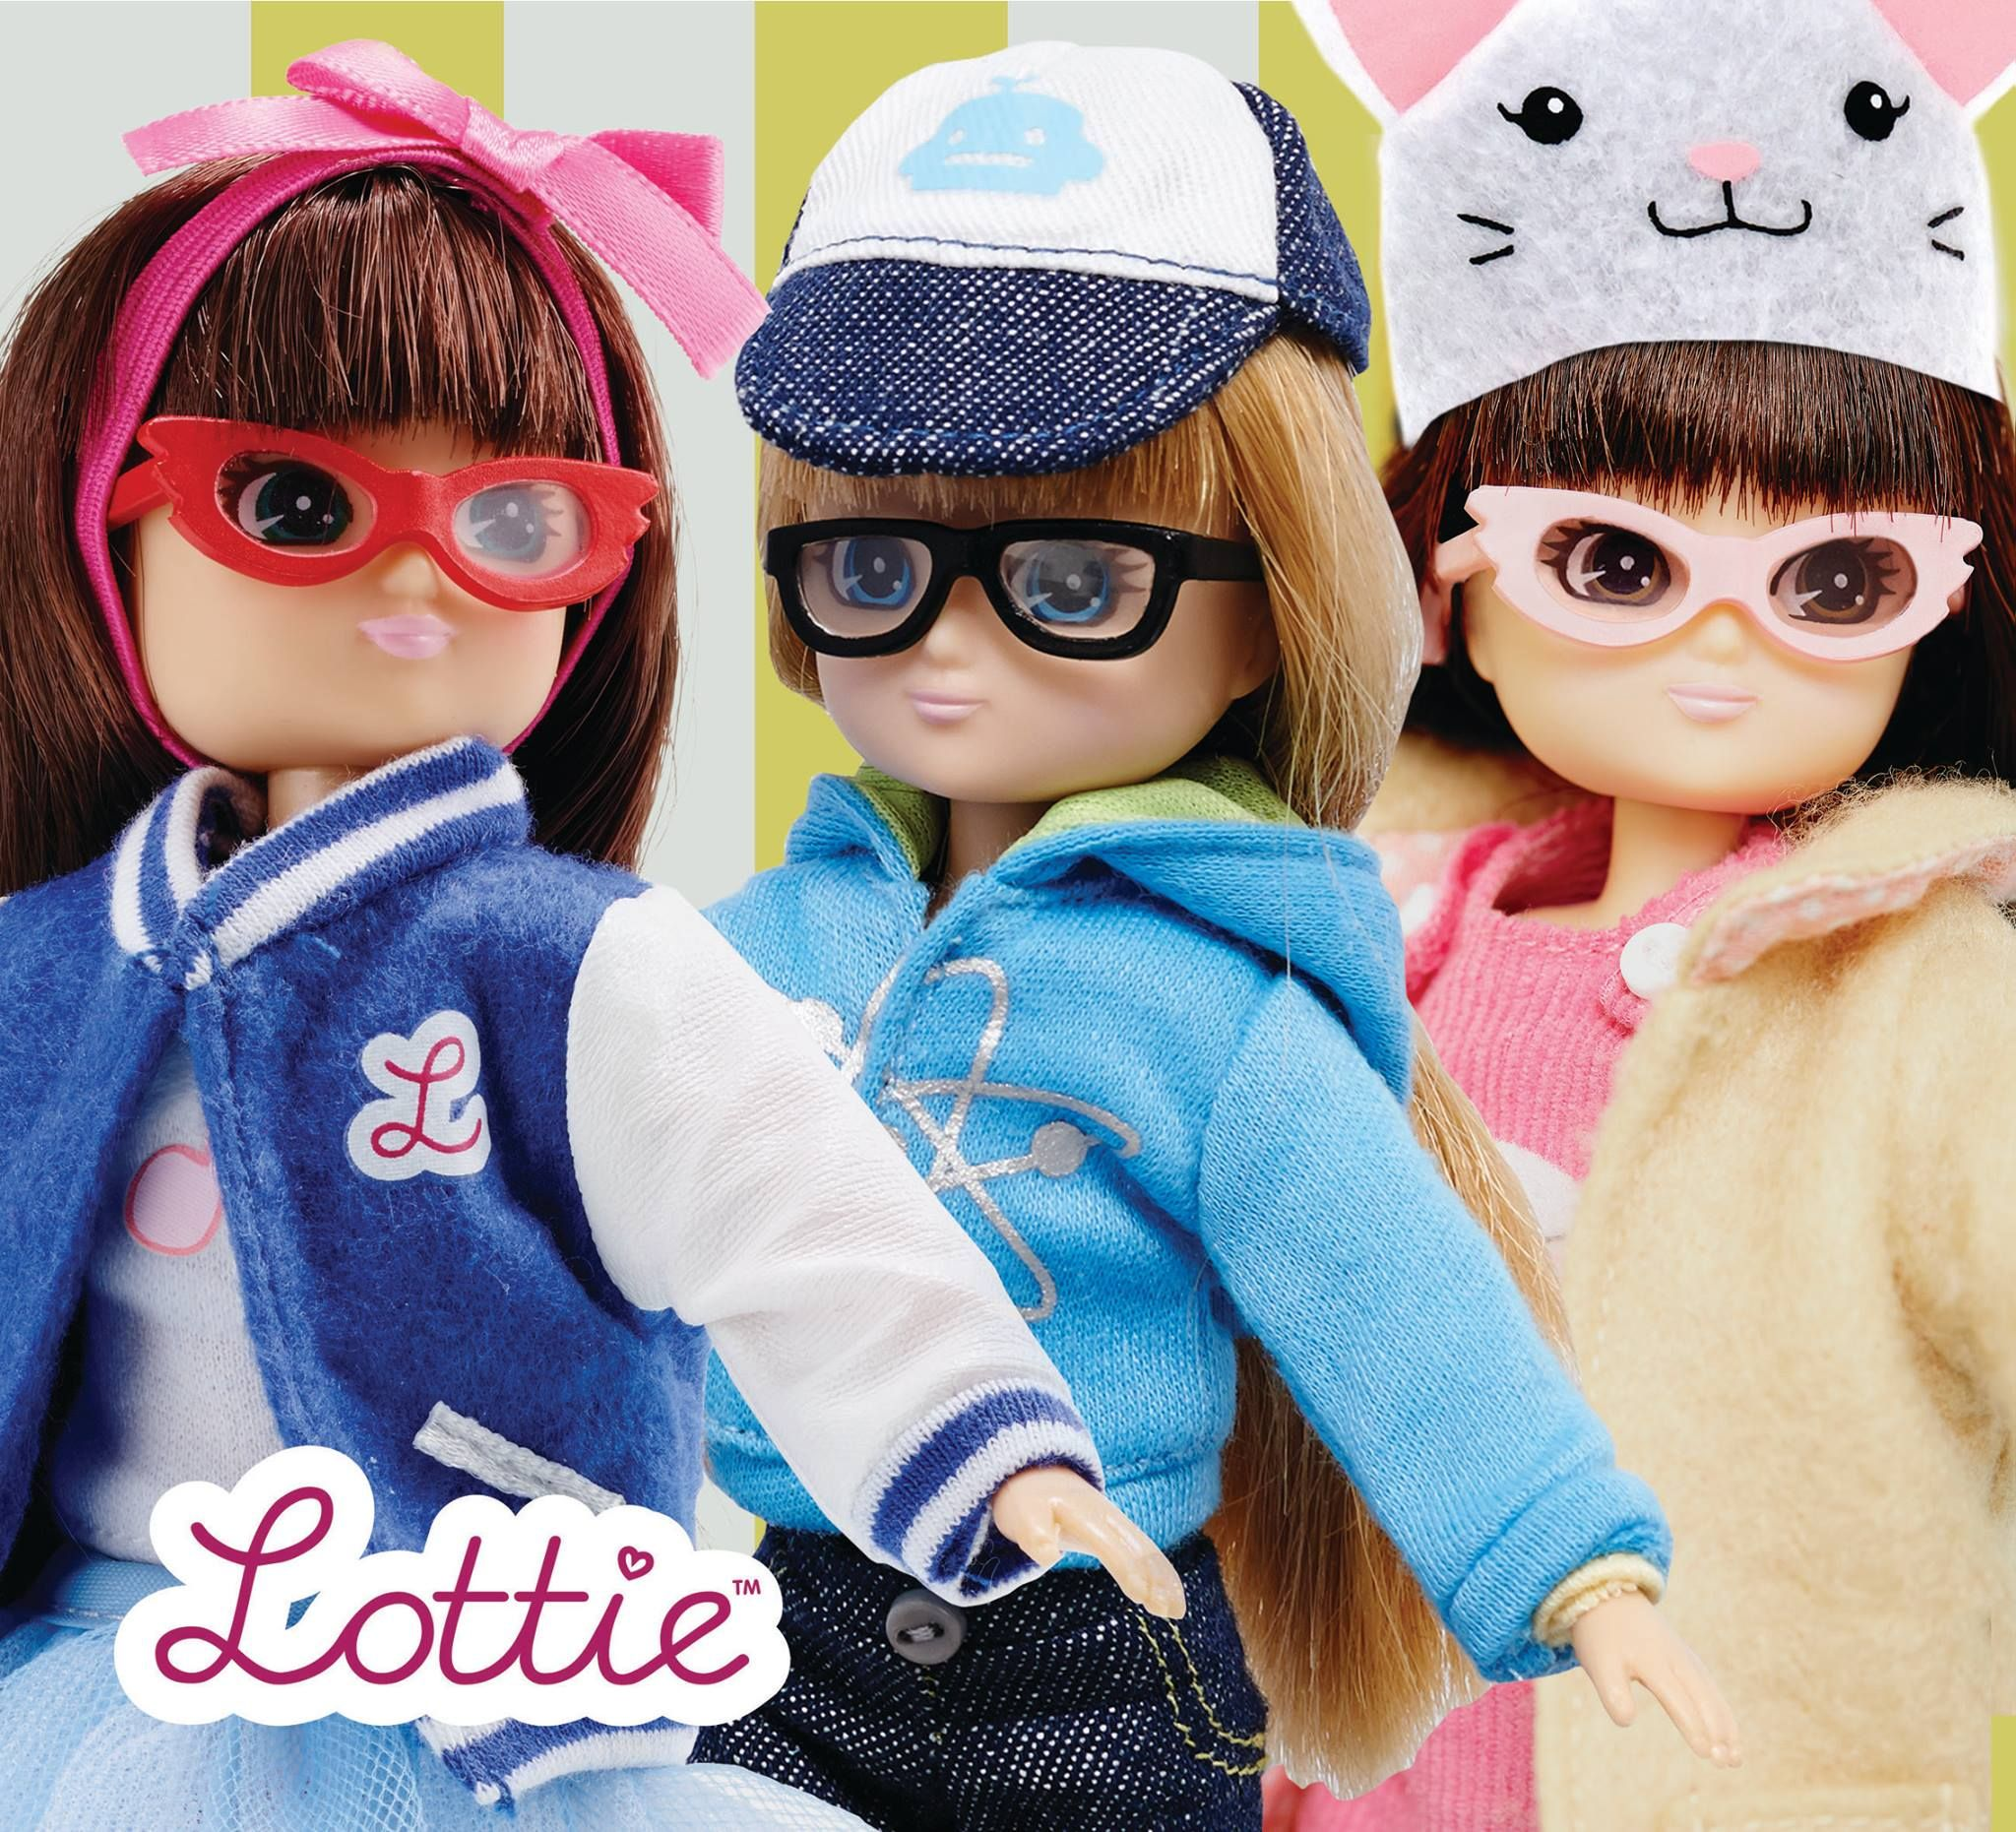 Love these dolls with glasses!